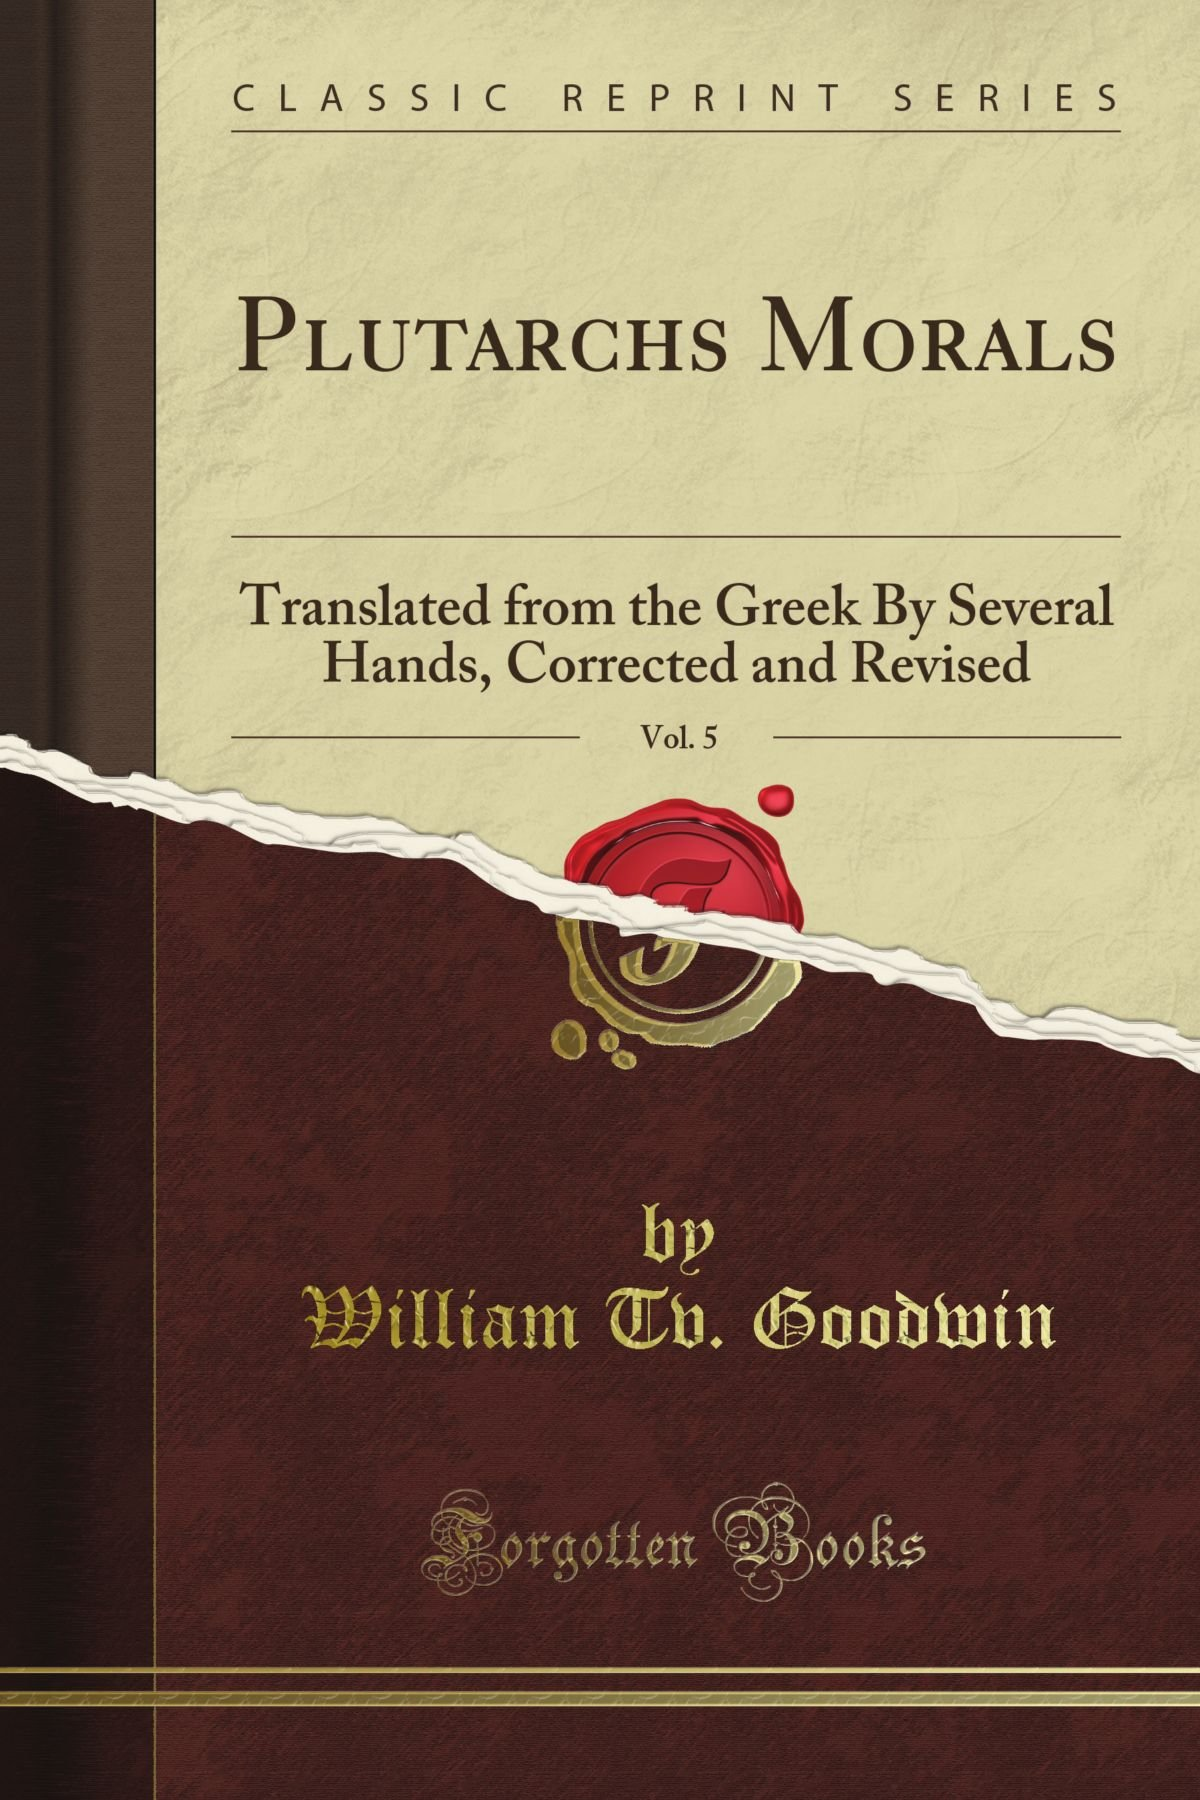 Plutarch's Morals: Translated from the Greek By Several Hands, Corrected and Revised, Vol. 5 (Classic Reprint) ebook